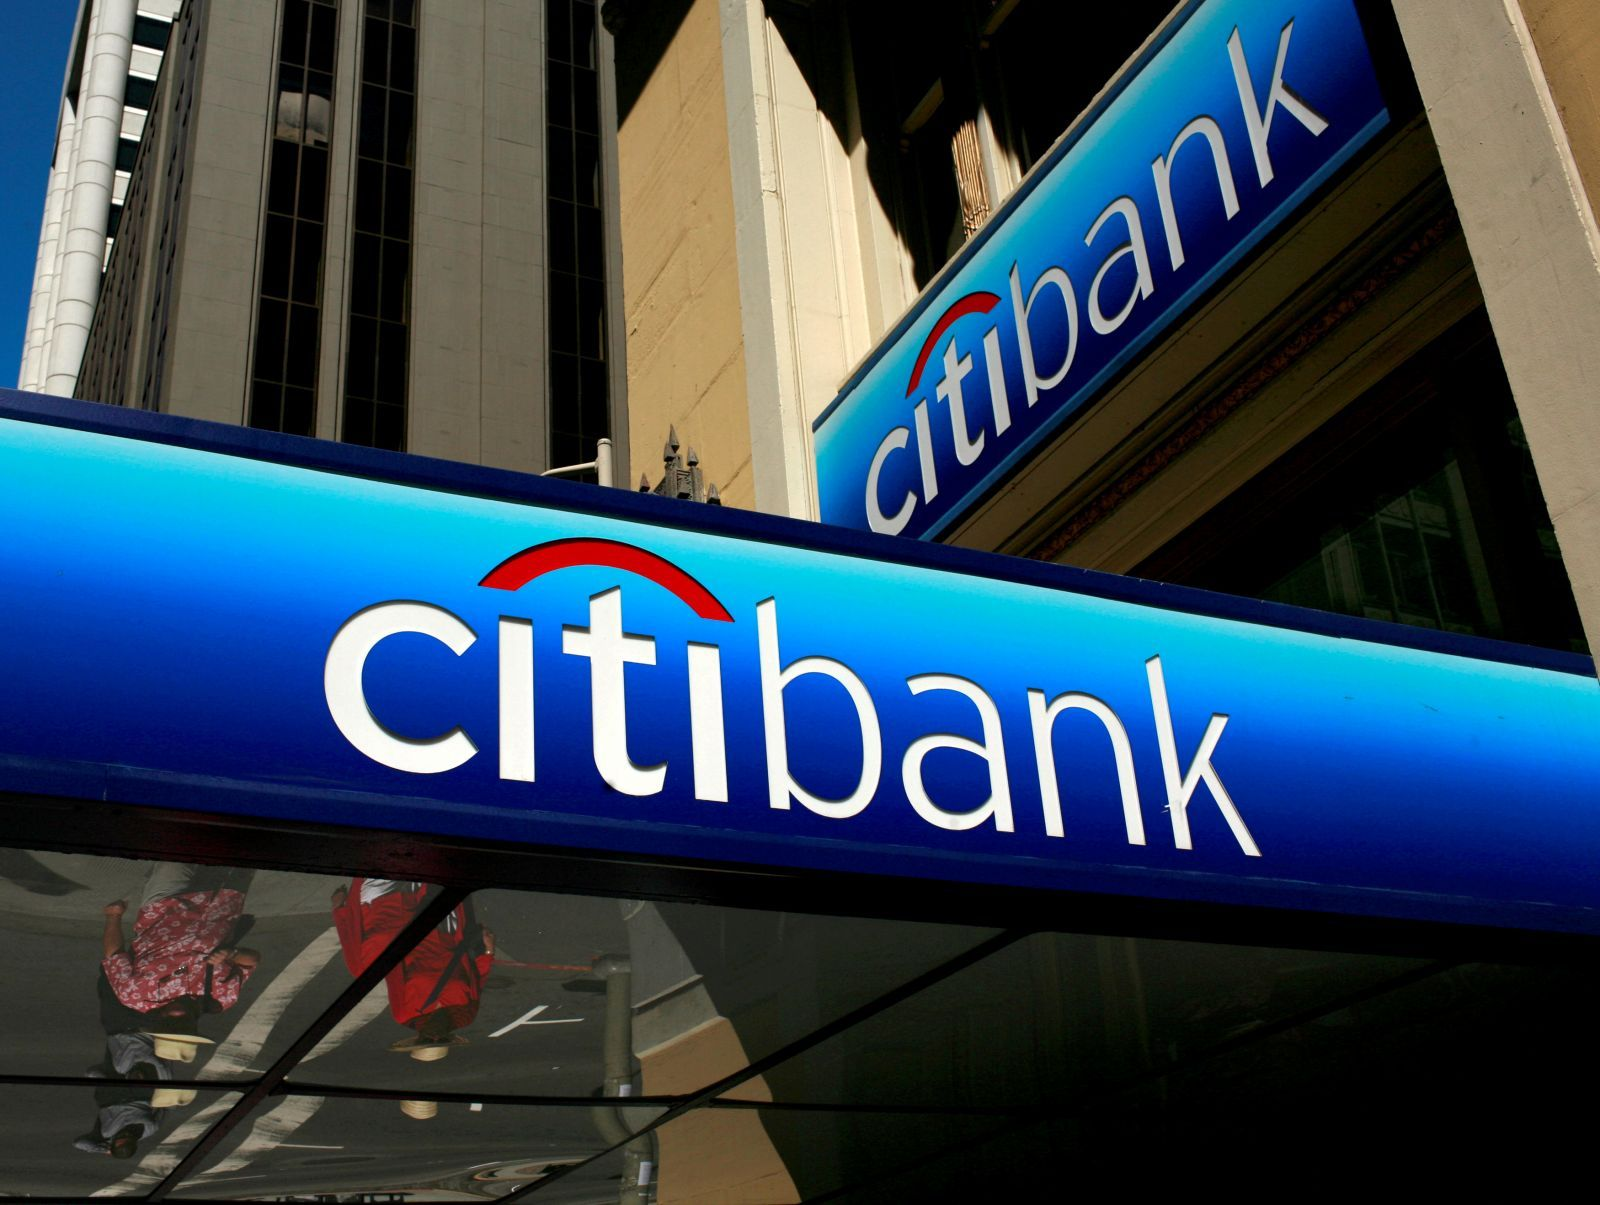 Citibank dramatically improves the Citi Rewards card with